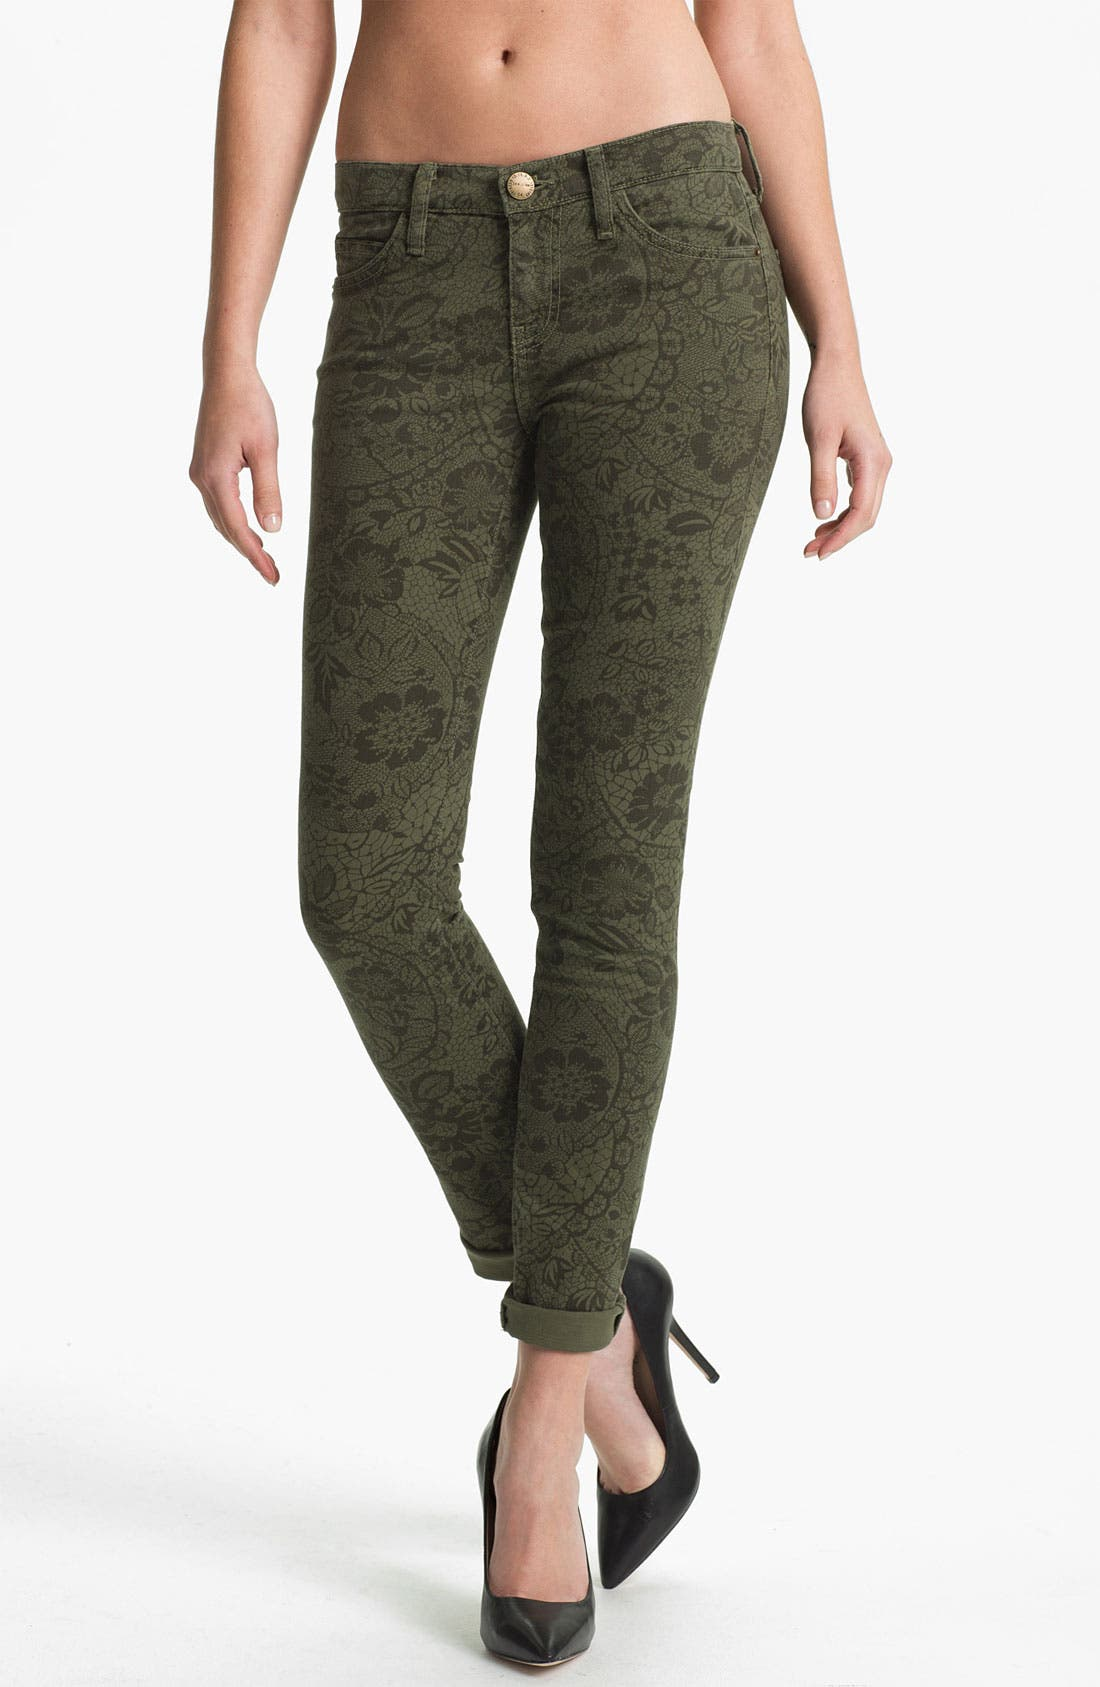 Alternate Image 1 Selected - Current/Elliott 'The Rolled' Print Stretch Jeans (Army Lace)